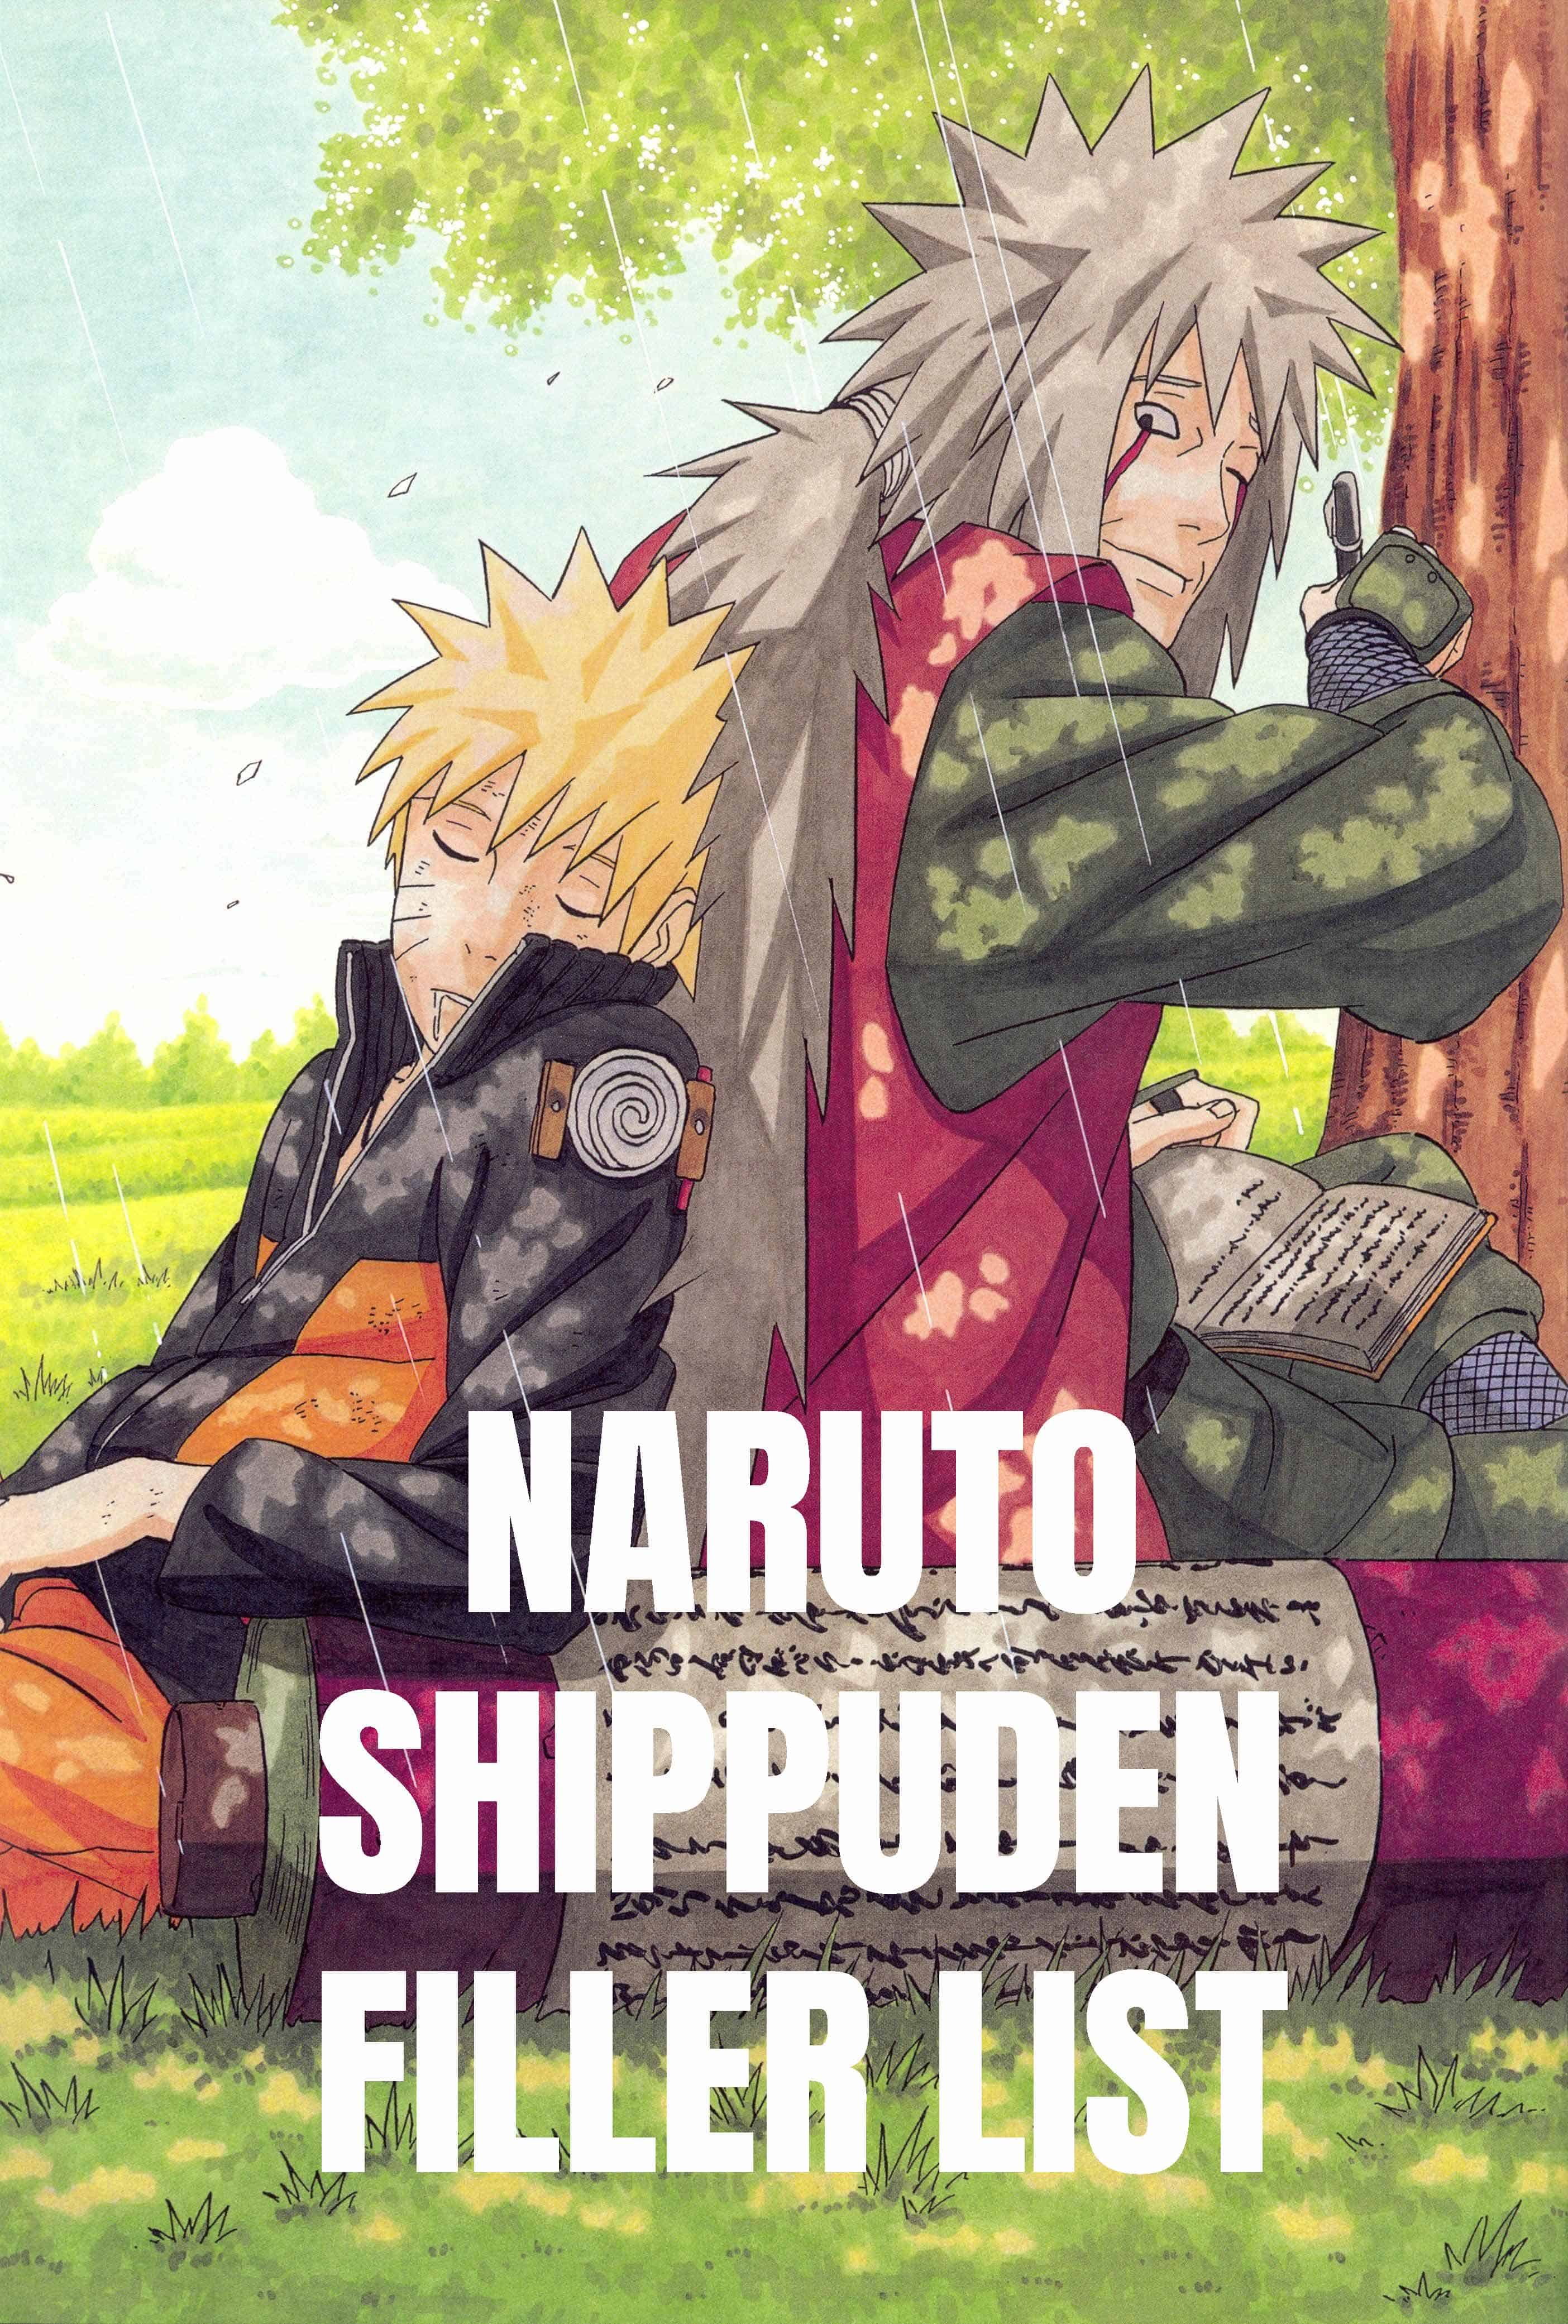 Naruto Shippuden Filler List With Episodes List - Anime ...